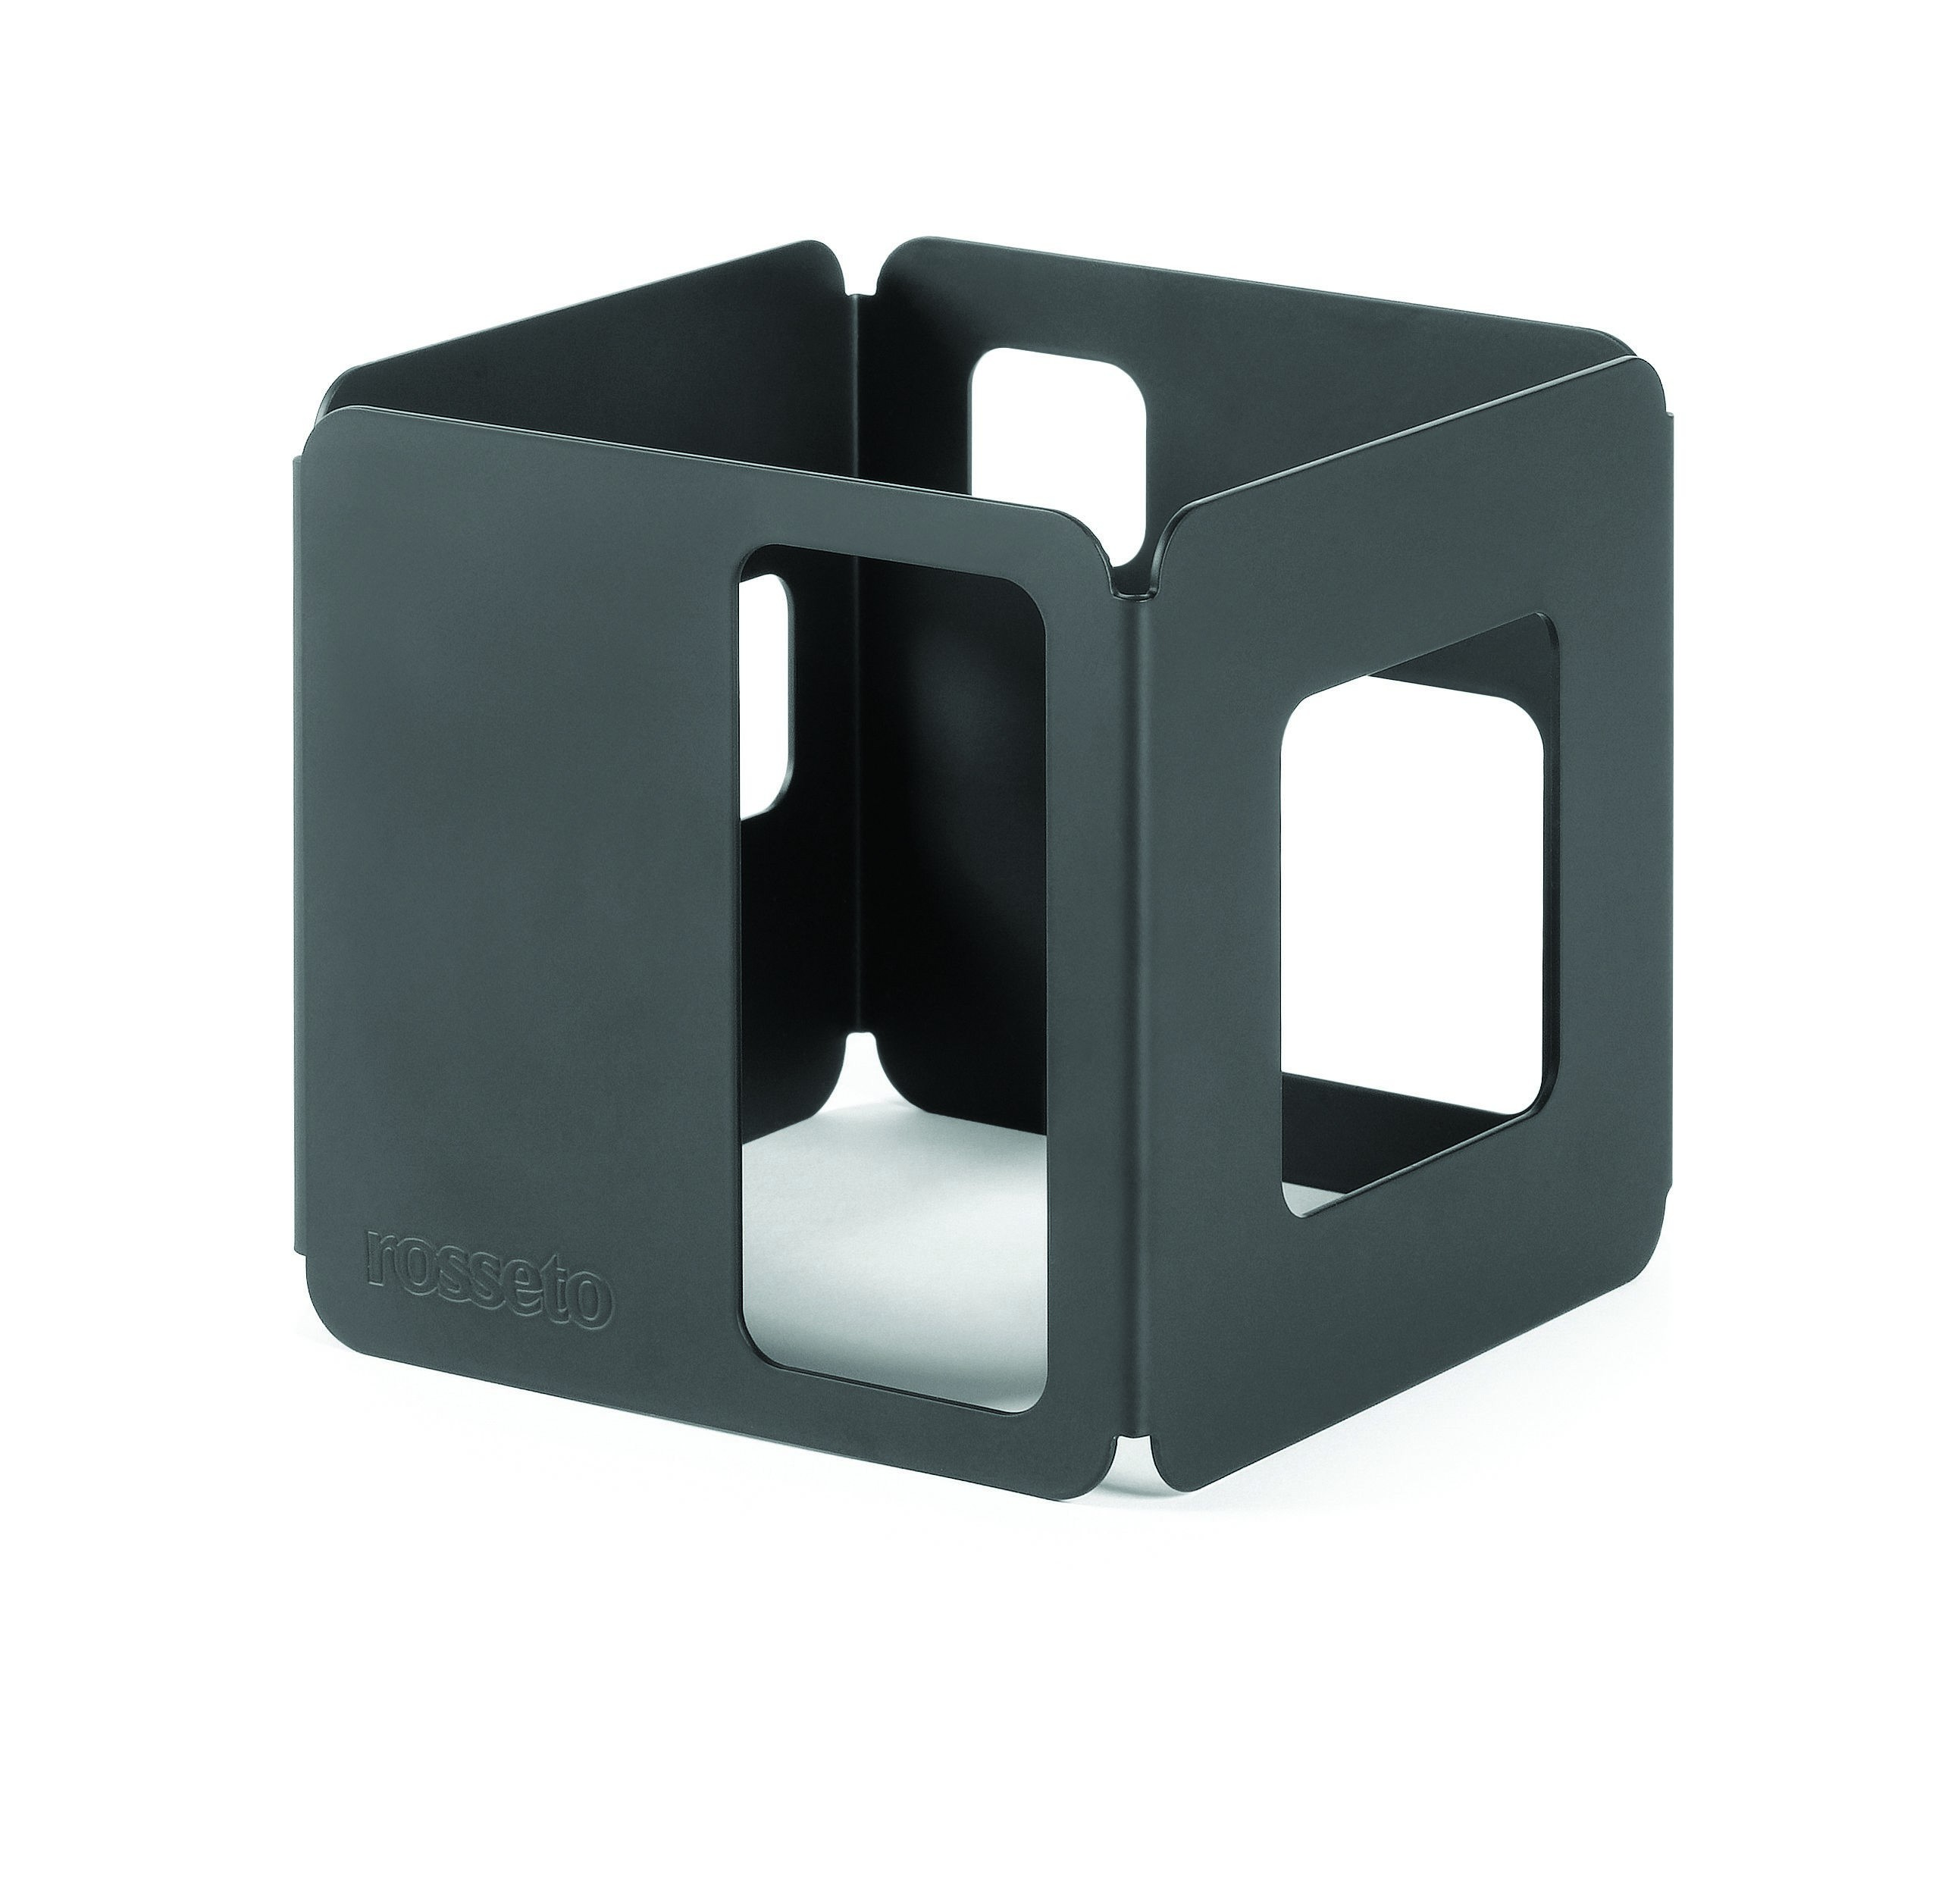 Square Riser Black Matte Powder Coated Steel Finish- 6